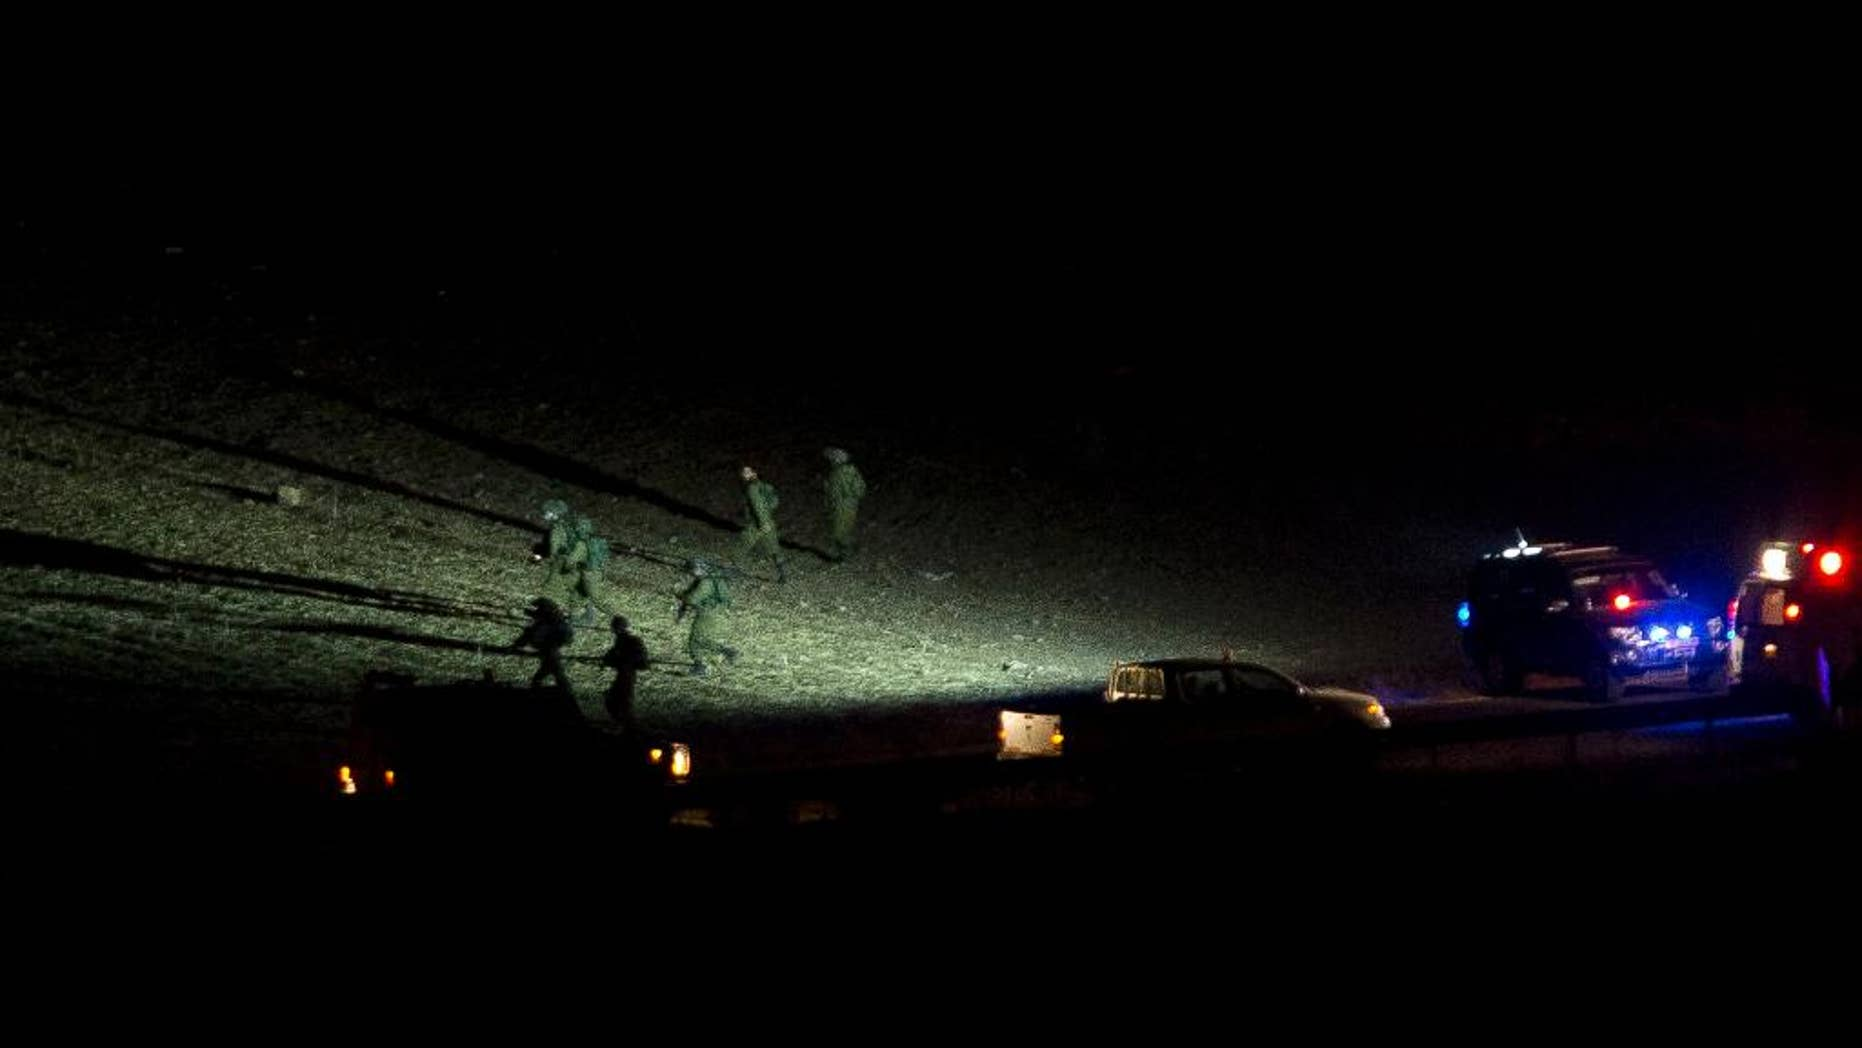 Israeli soldiers search the area of a shooting attack near Nablus, West Bank, Thursday, Oct. 1, 2015. Israeli military said that a Palestinian assailant shot and killed two parents driving with their four children along a West Bank road on Thursday. (AP Photo/Majdi Mohammed)